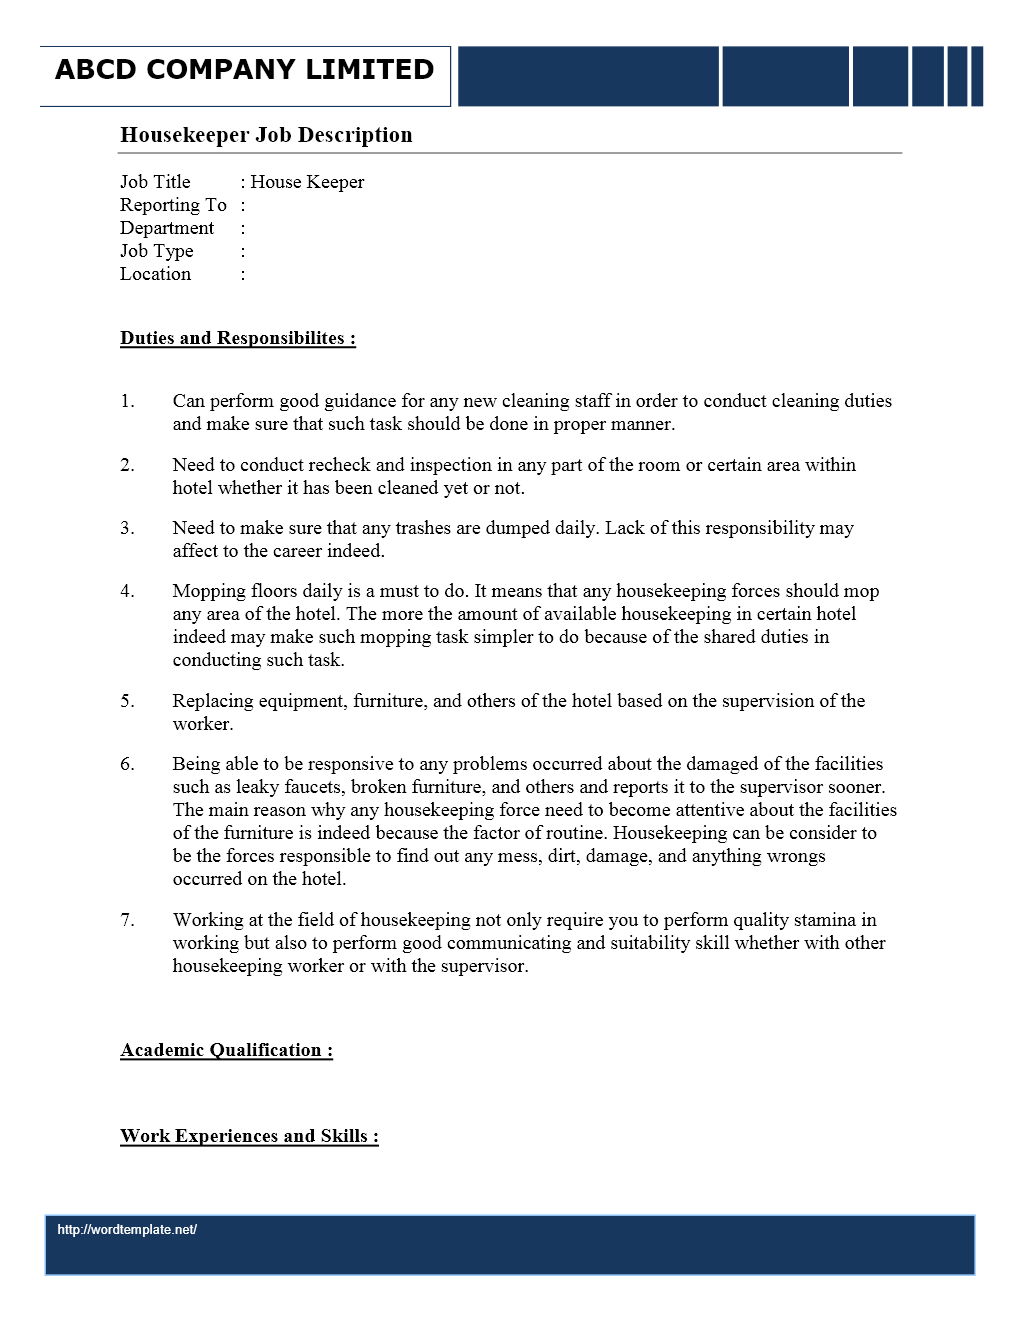 housekeeper job description wordtemplates net job description housekeeper